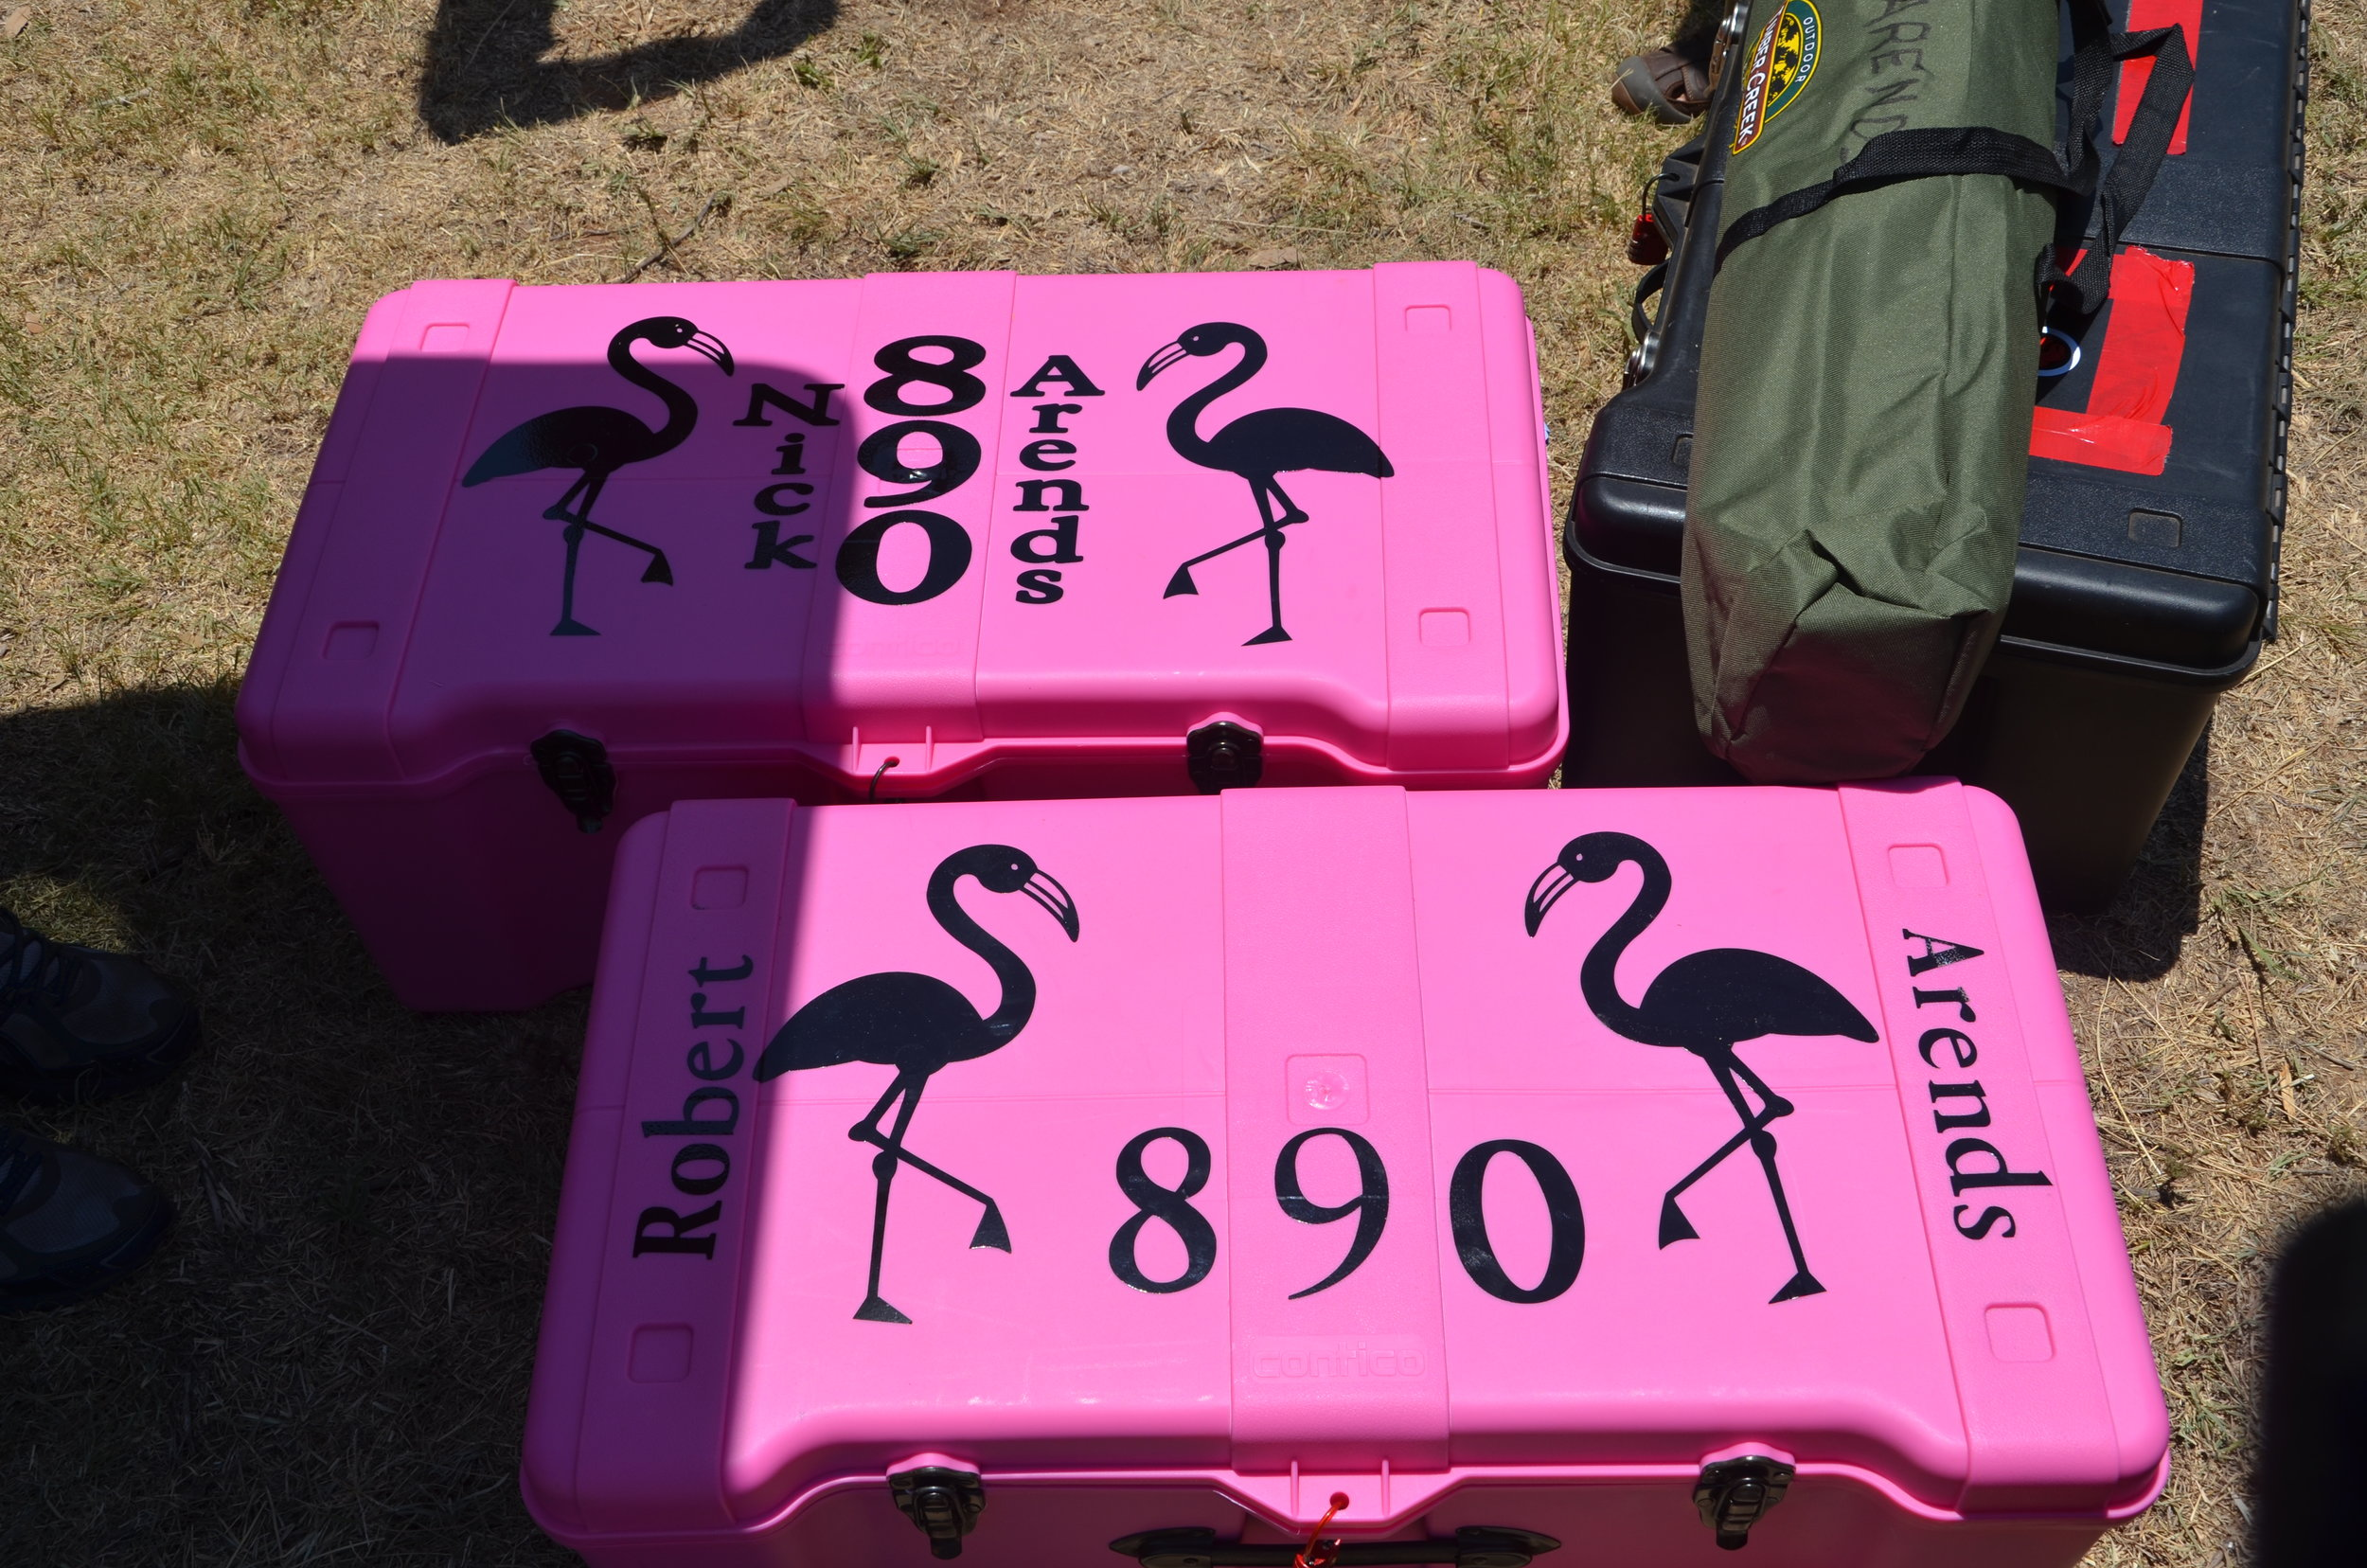 - We camp. With flamingos.